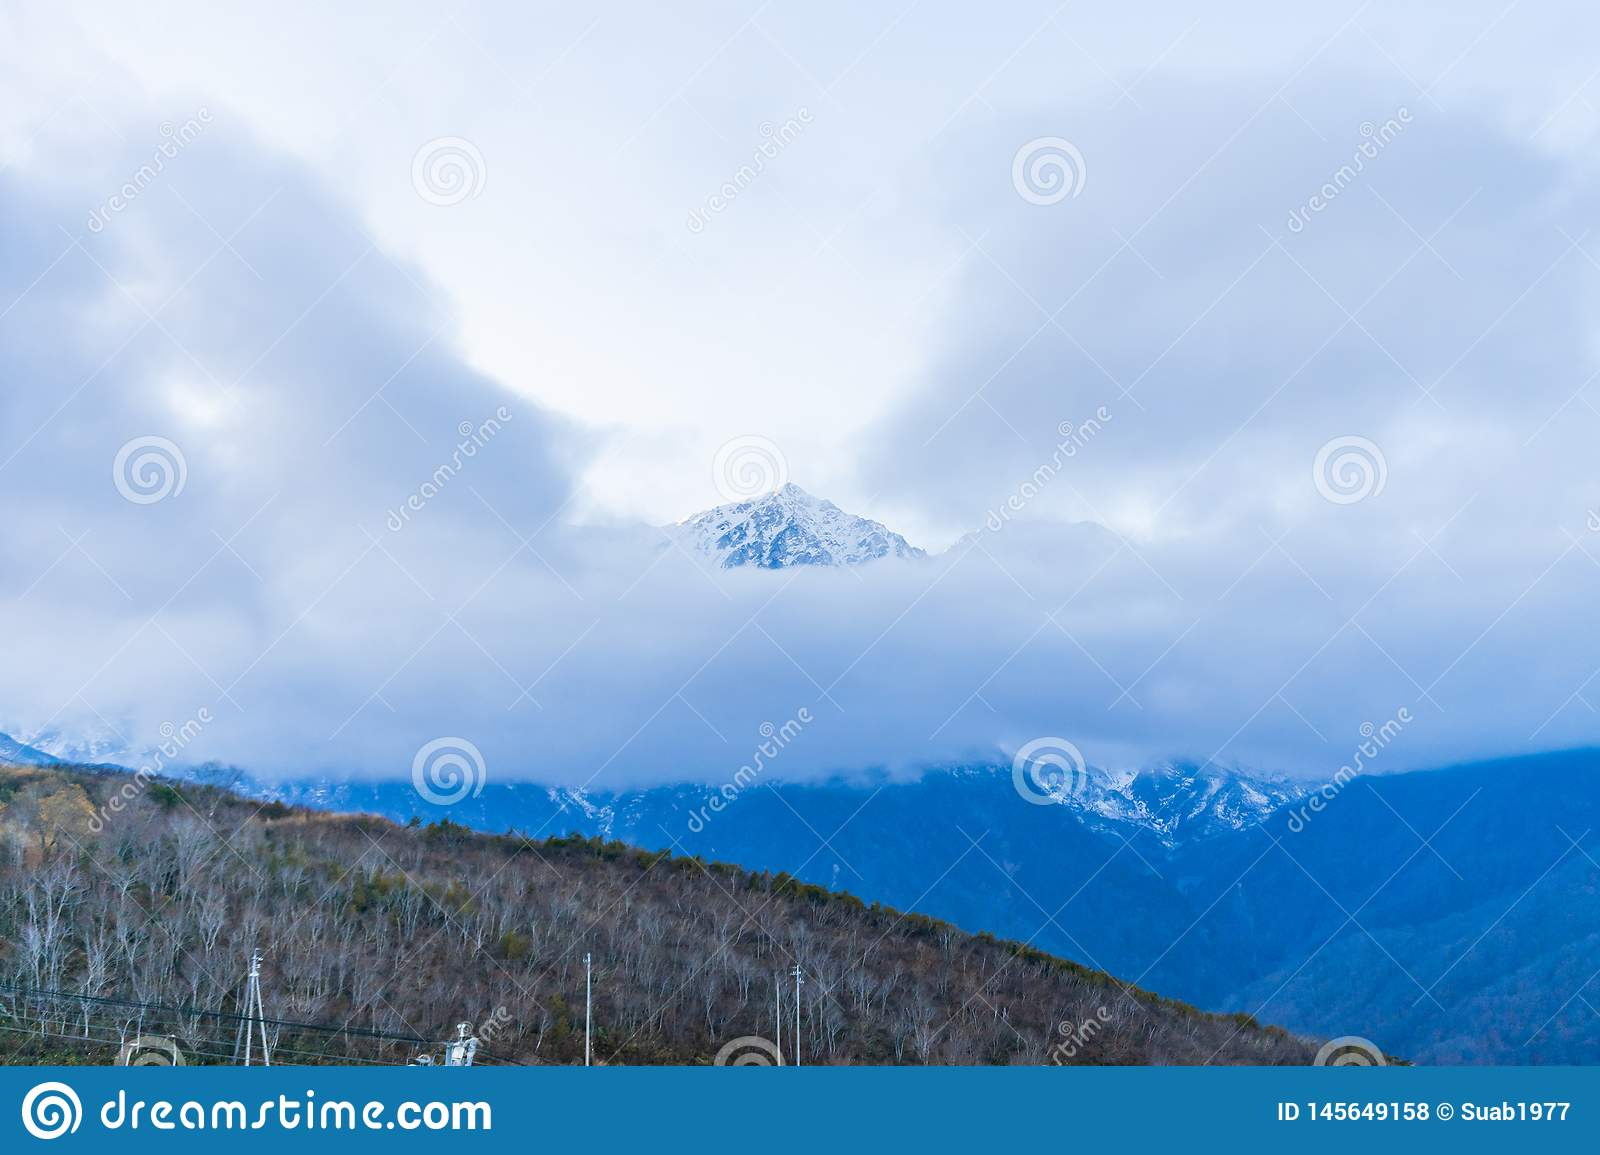 Beautiful landscape view of Hakuba in the winter with snow on the mountain and blue sky background in Nagano Prefecture Japan